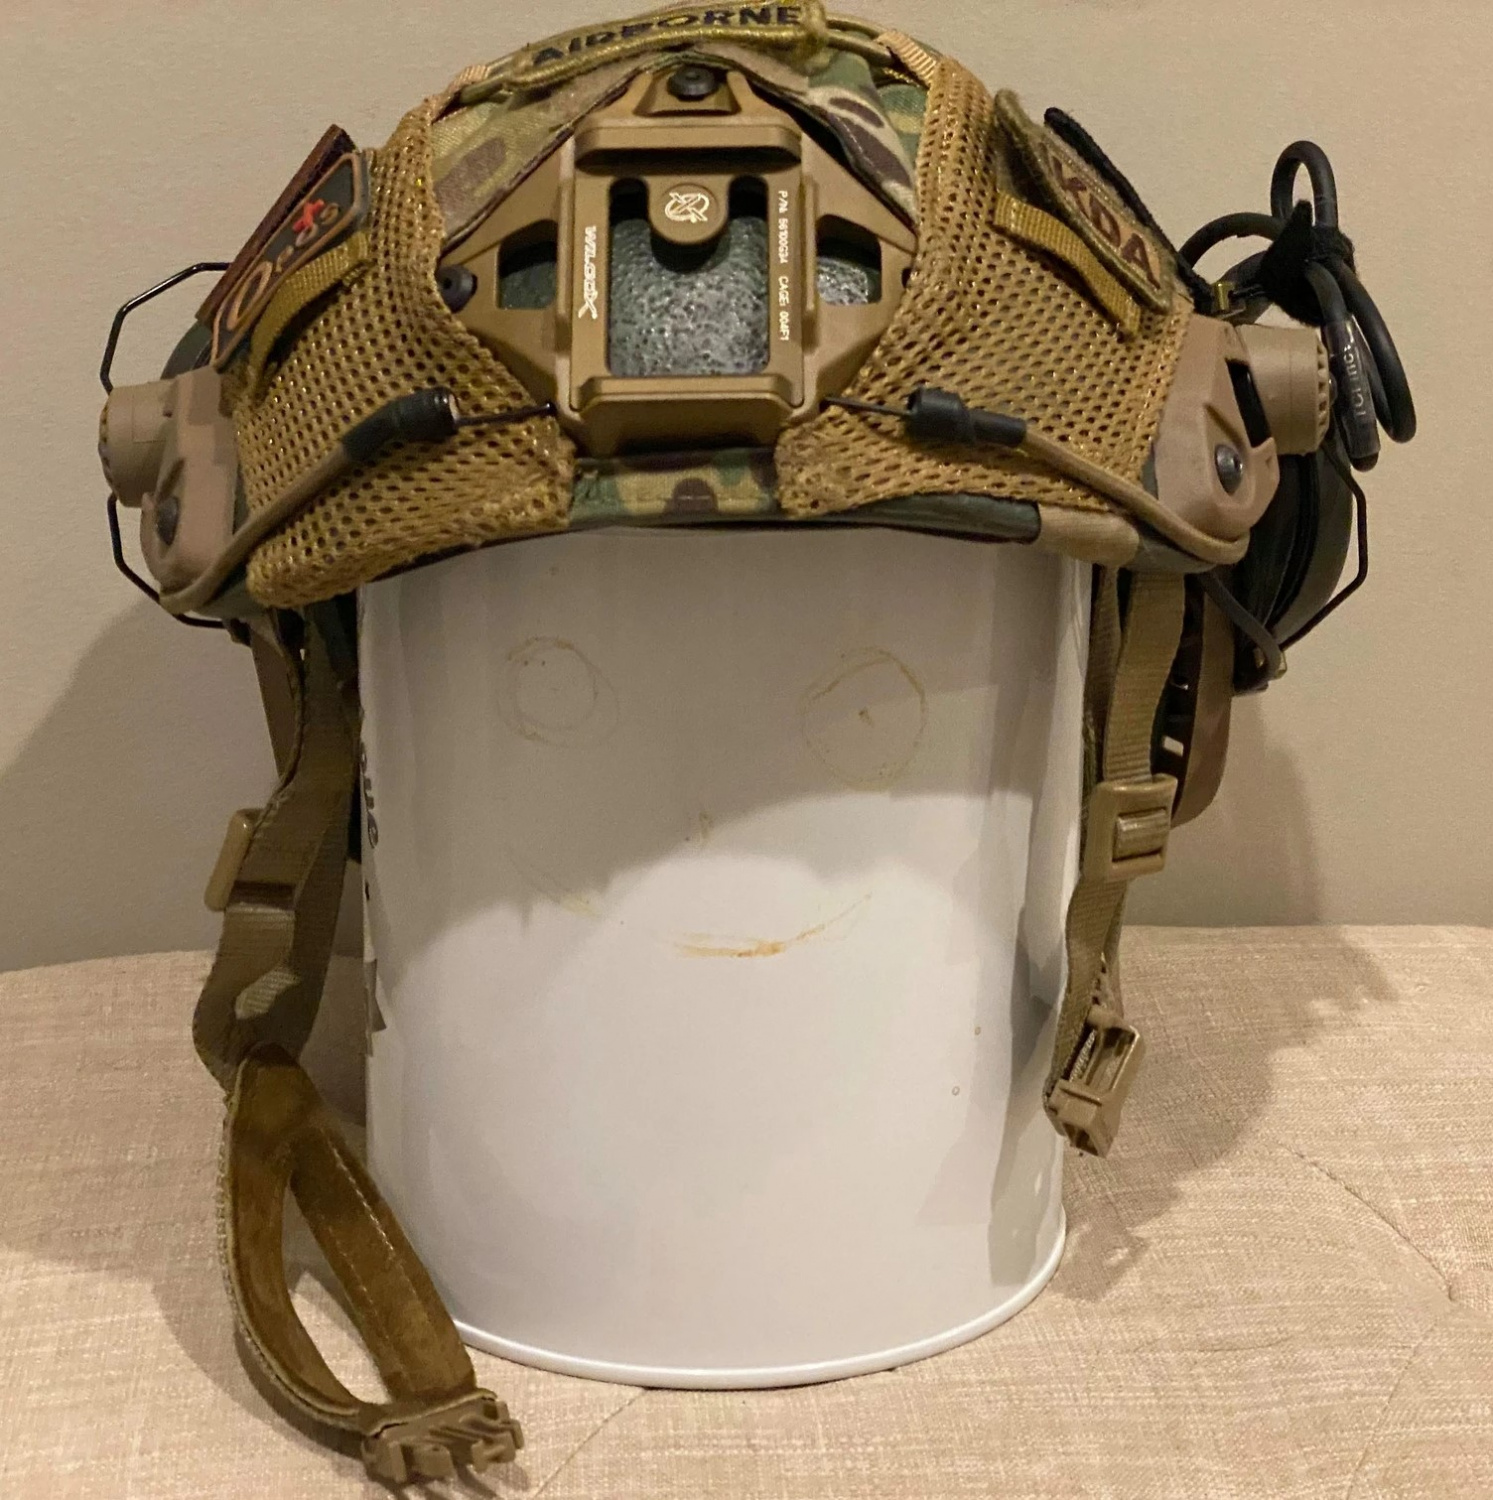 The helmet's front view showcases the included Wilcox NVG shroud.